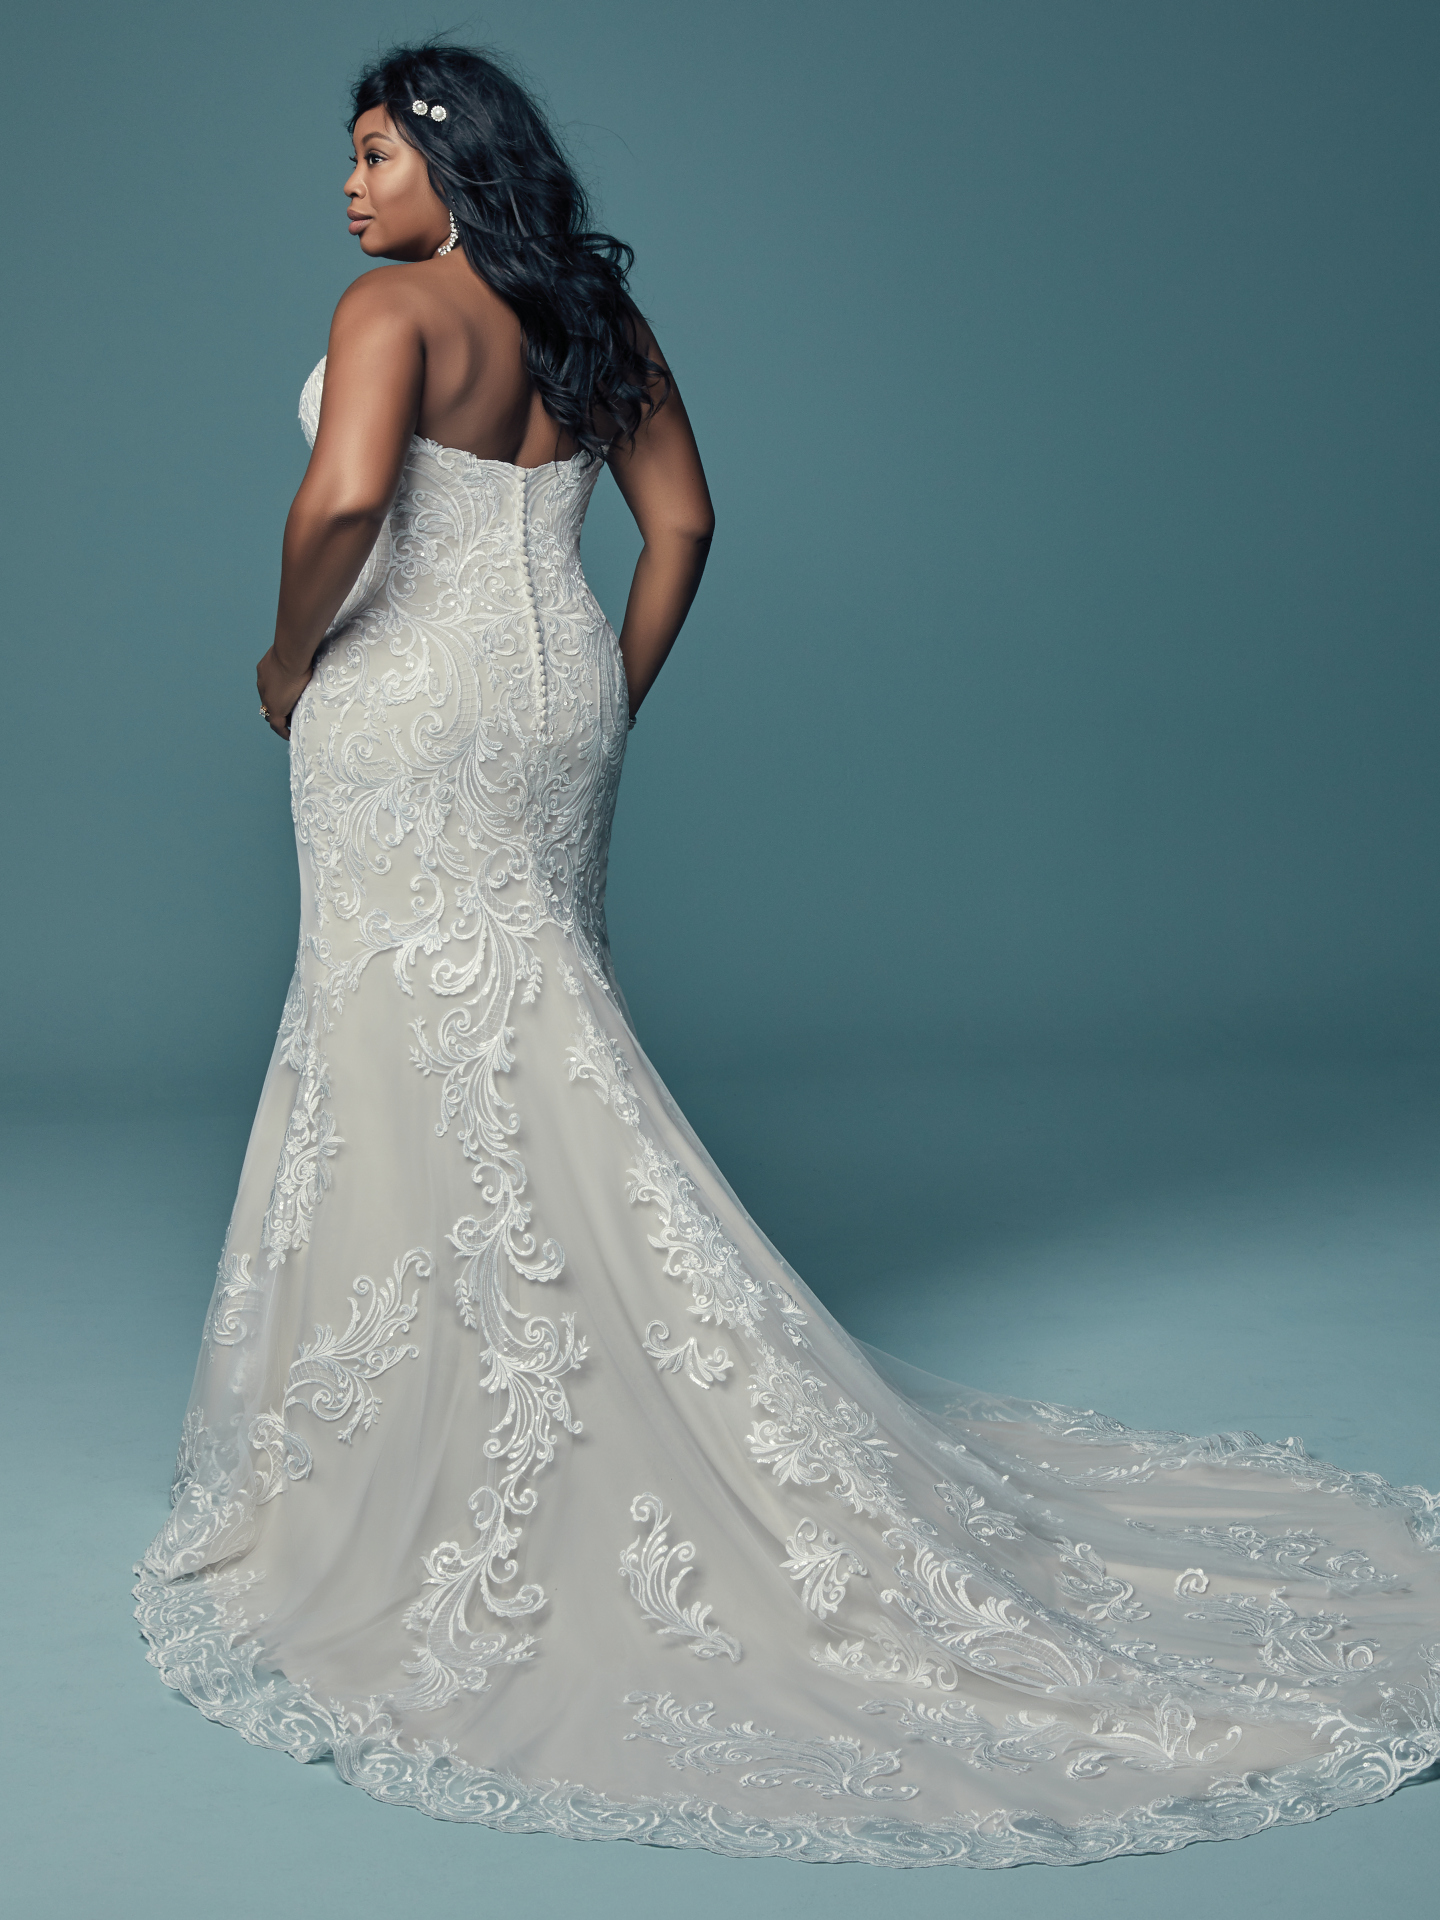 The Ultimate Guide to Wedding Gowns for Curvy Brides from Whitney of CurveGenius - Try the Luanne wedding dress by Maggie Sottero for that classic fit and flare